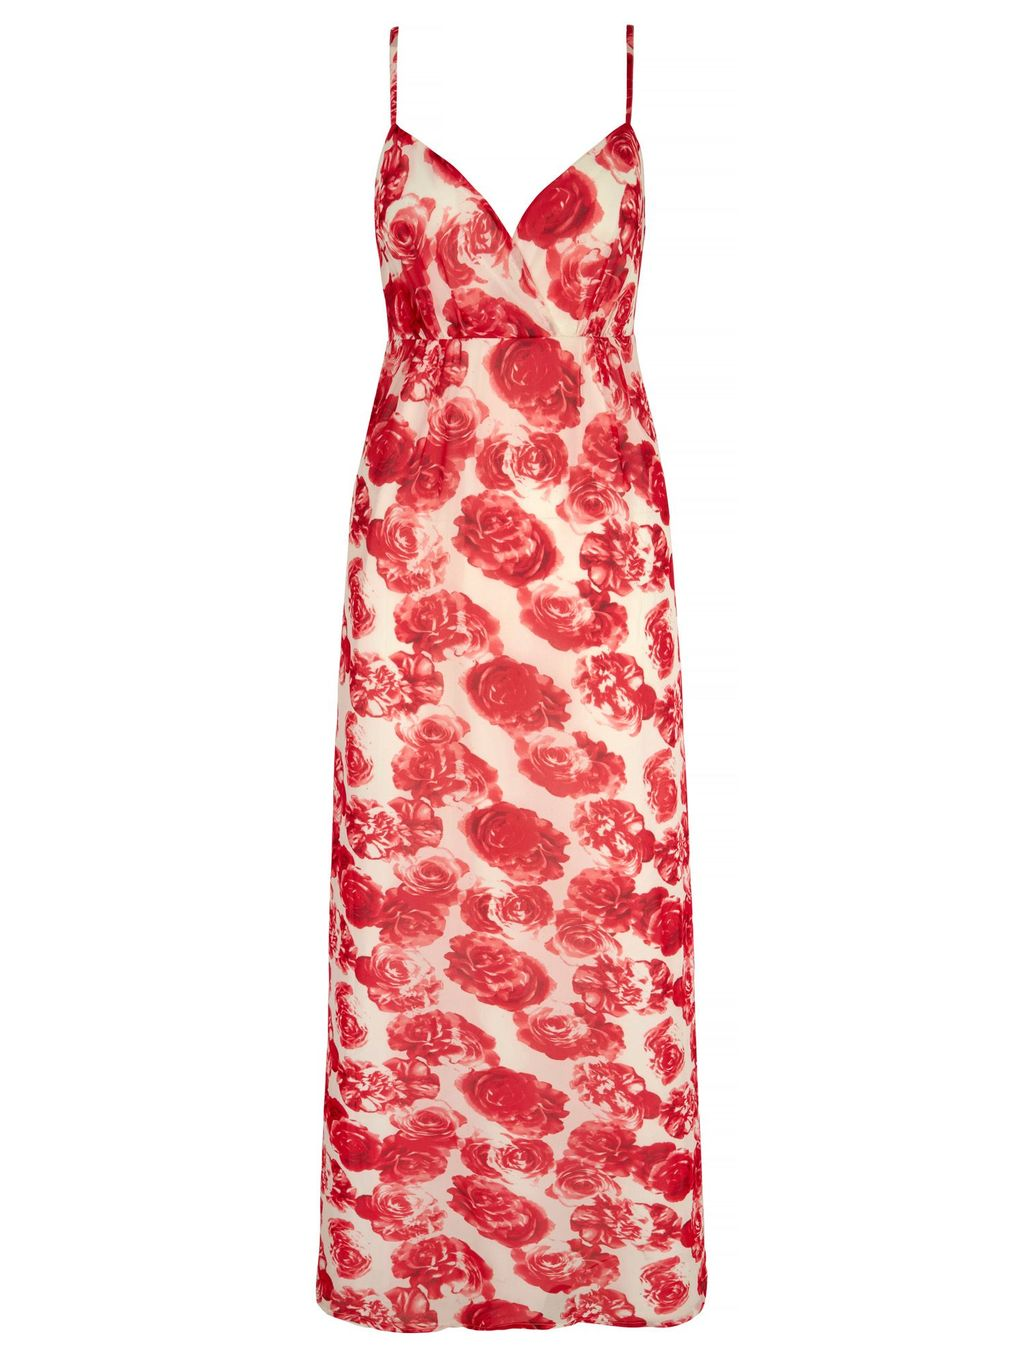 Rose Print Strappy Maxi Dress, White - neckline: low v-neck; sleeve style: spaghetti straps; style: maxi dress; length: ankle length; predominant colour: white; secondary colour: true red; occasions: evening; fit: body skimming; fibres: polyester/polyamide - stretch; sleeve length: sleeveless; pattern type: fabric; pattern size: big & busy; pattern: florals; texture group: jersey - stretchy/drapey; multicoloured: multicoloured; season: s/s 2016